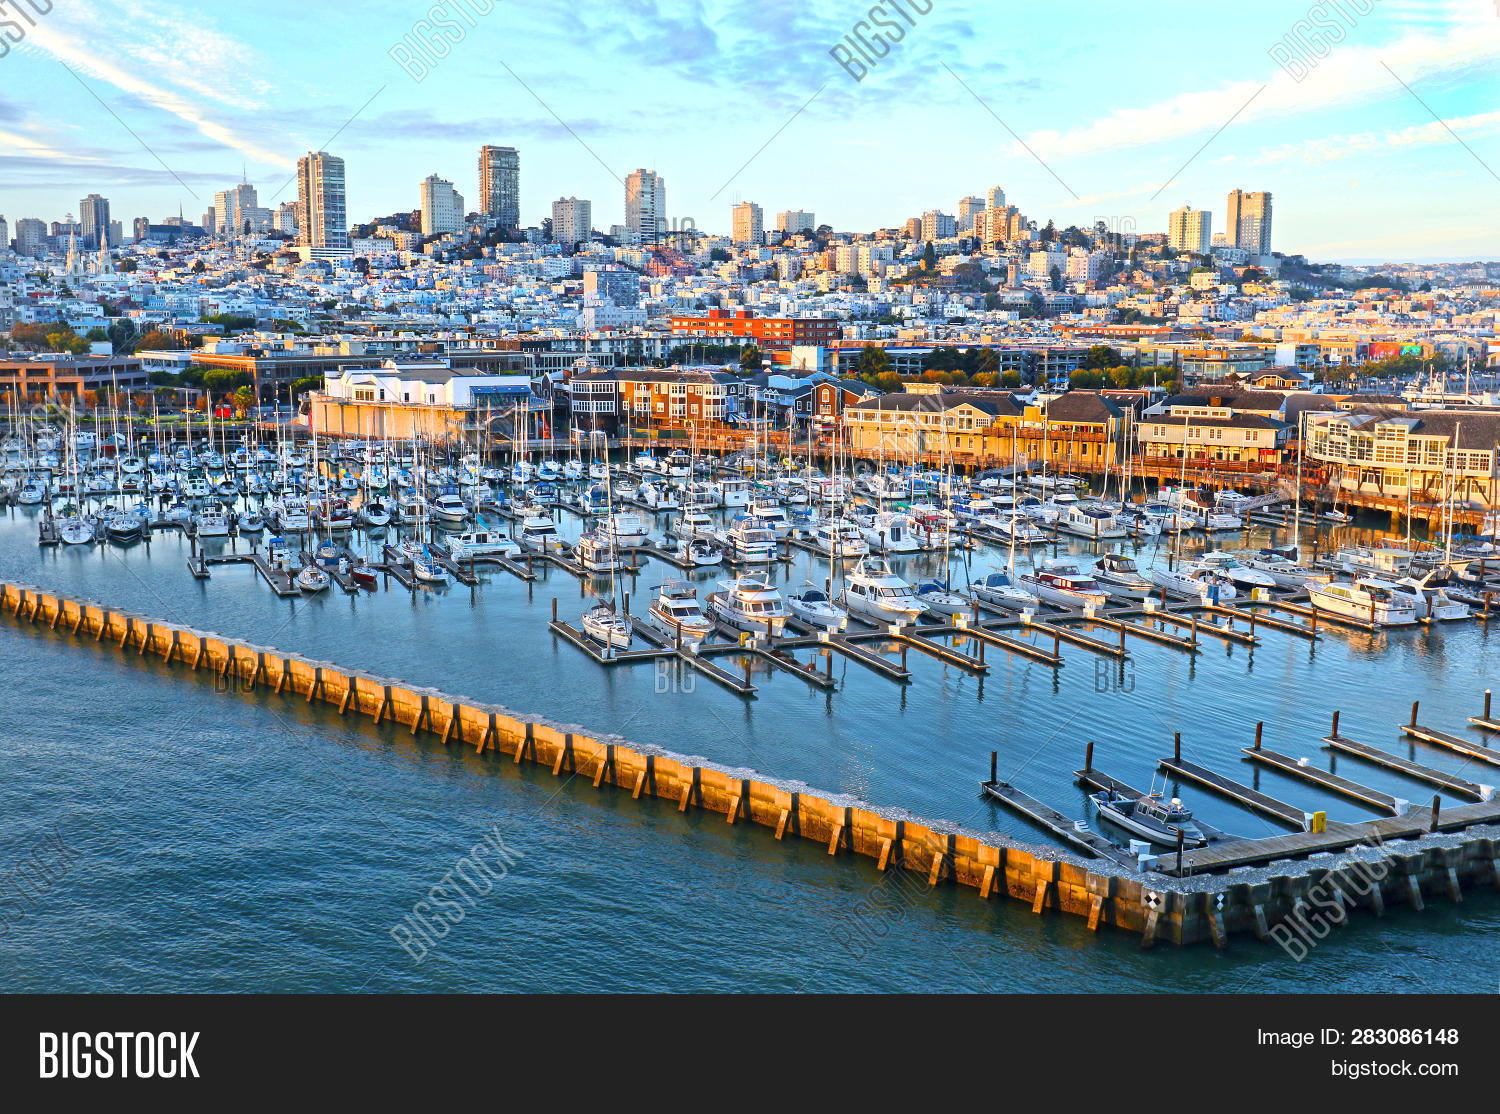 San Francisco Bay Area Image Photo Free Trial Bigstock